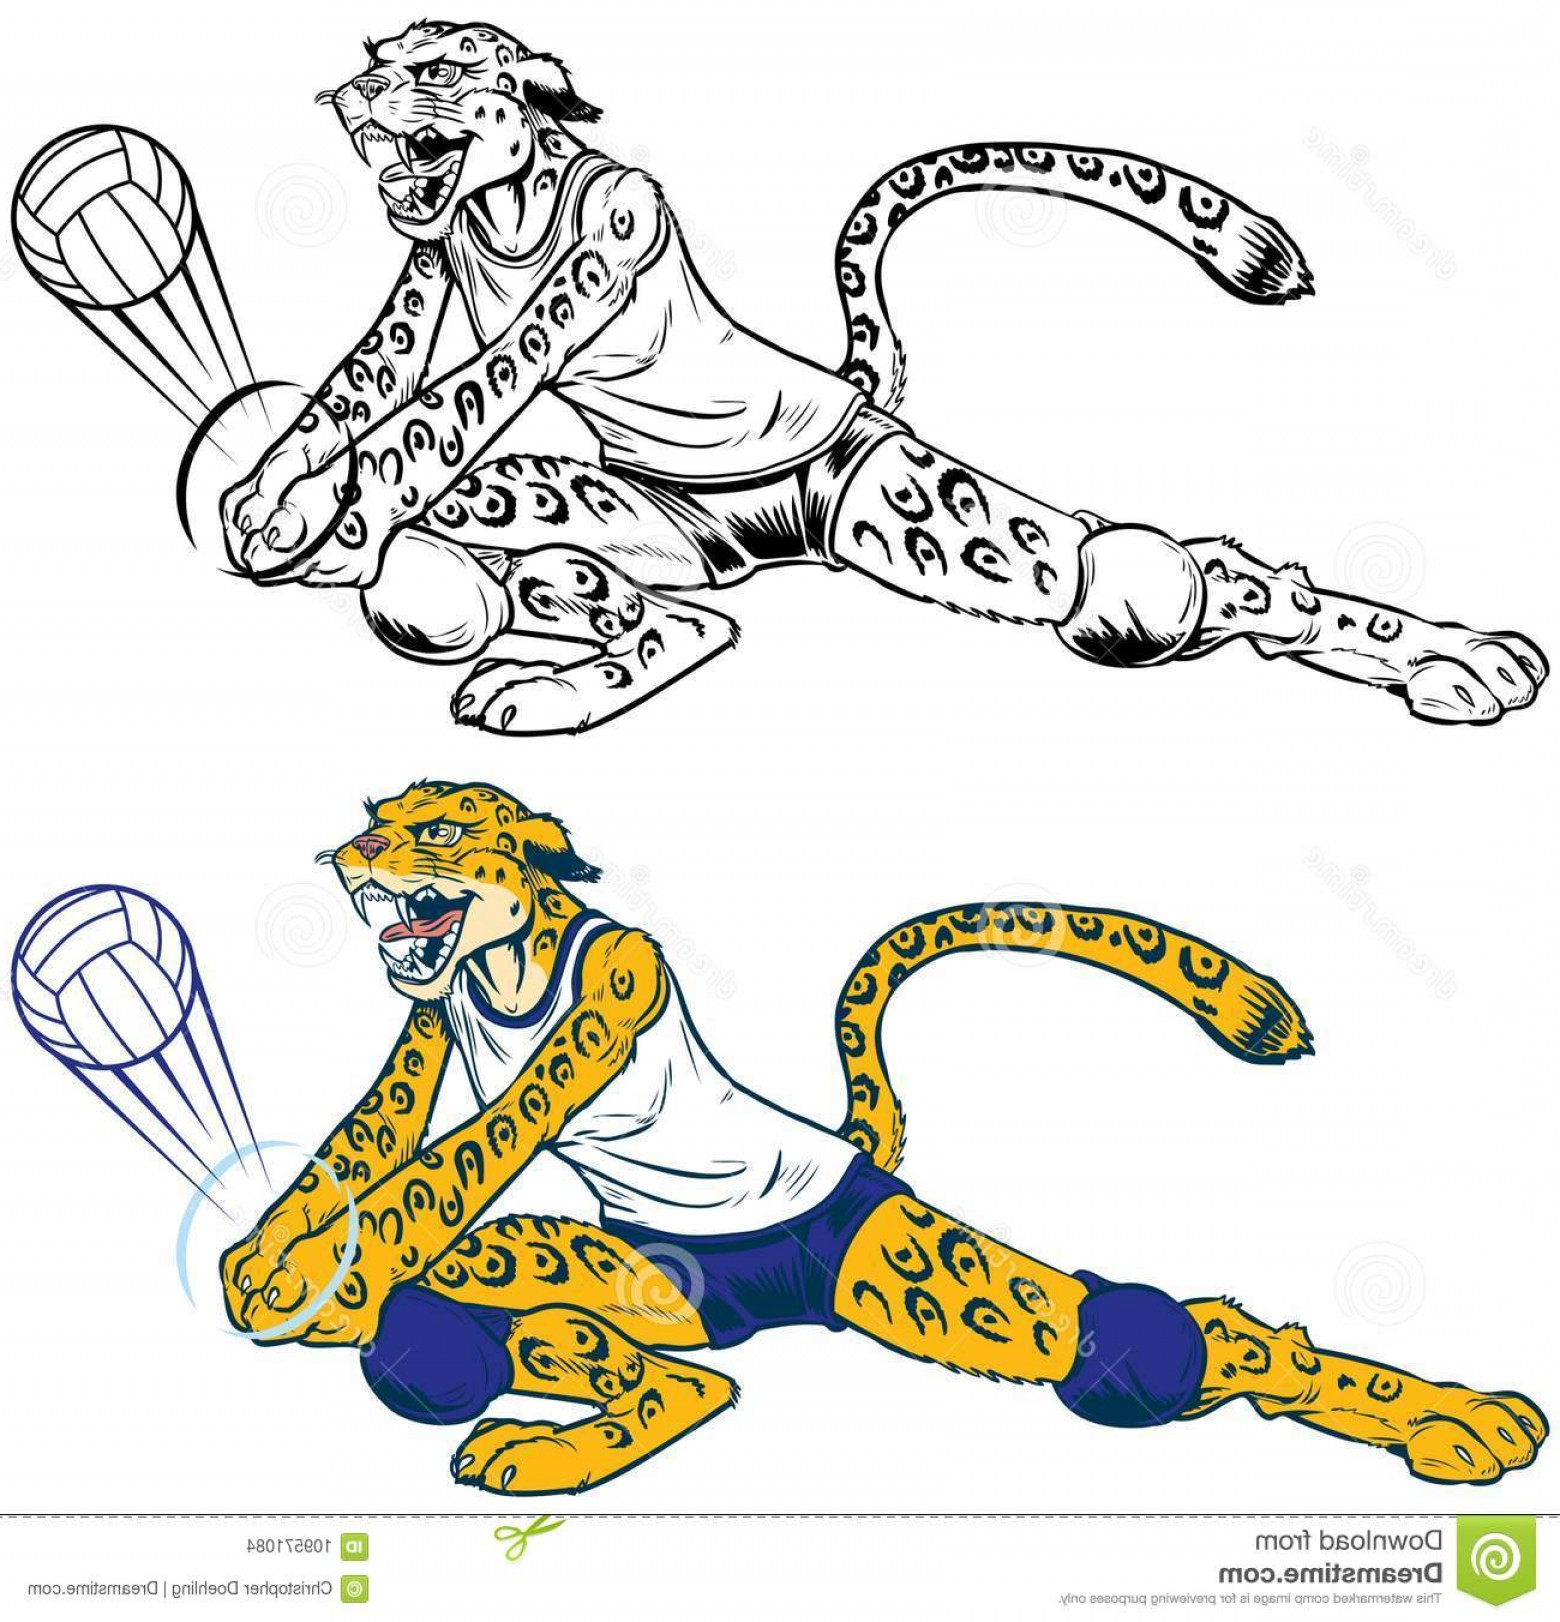 Volleyball Vector Dog Lady: Vector Cartoon Clip Art Illustration Lady Wildcat Leopard Jaguar Volleyball Player Mascot Doing Dig Character Ball Image